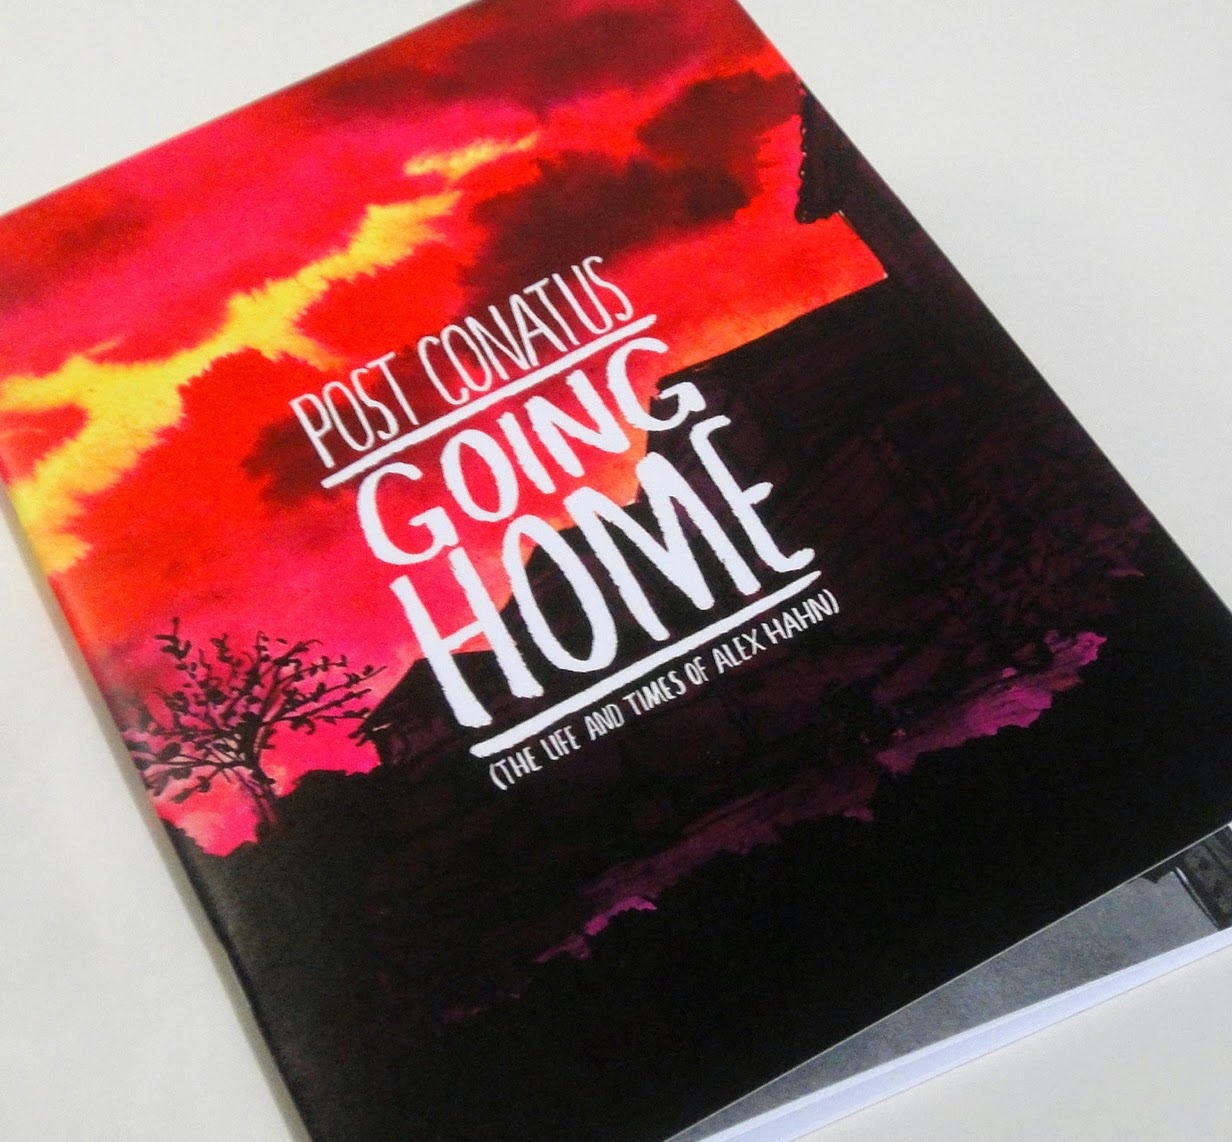 Photo of comic book 'going home' by Alex Hahn